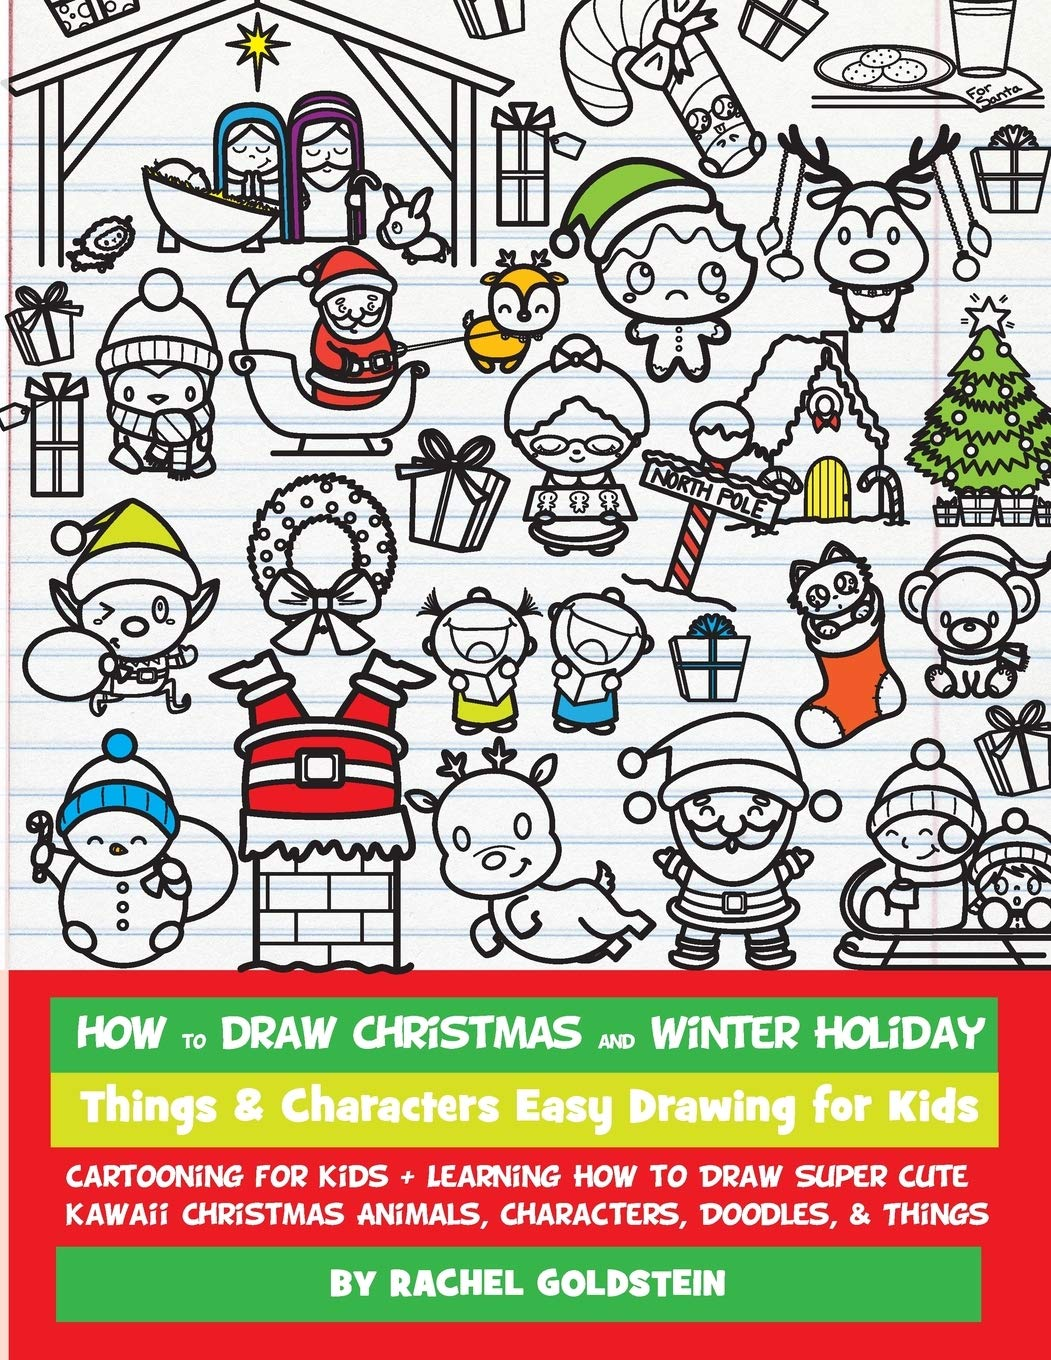 How To Draw Christmas And Winter Holiday Things Characters Easy Drawing For Kids Cartooning For Kids Learning How To Draw Super Cute Kawaii Characters Doodles Things Volume 16